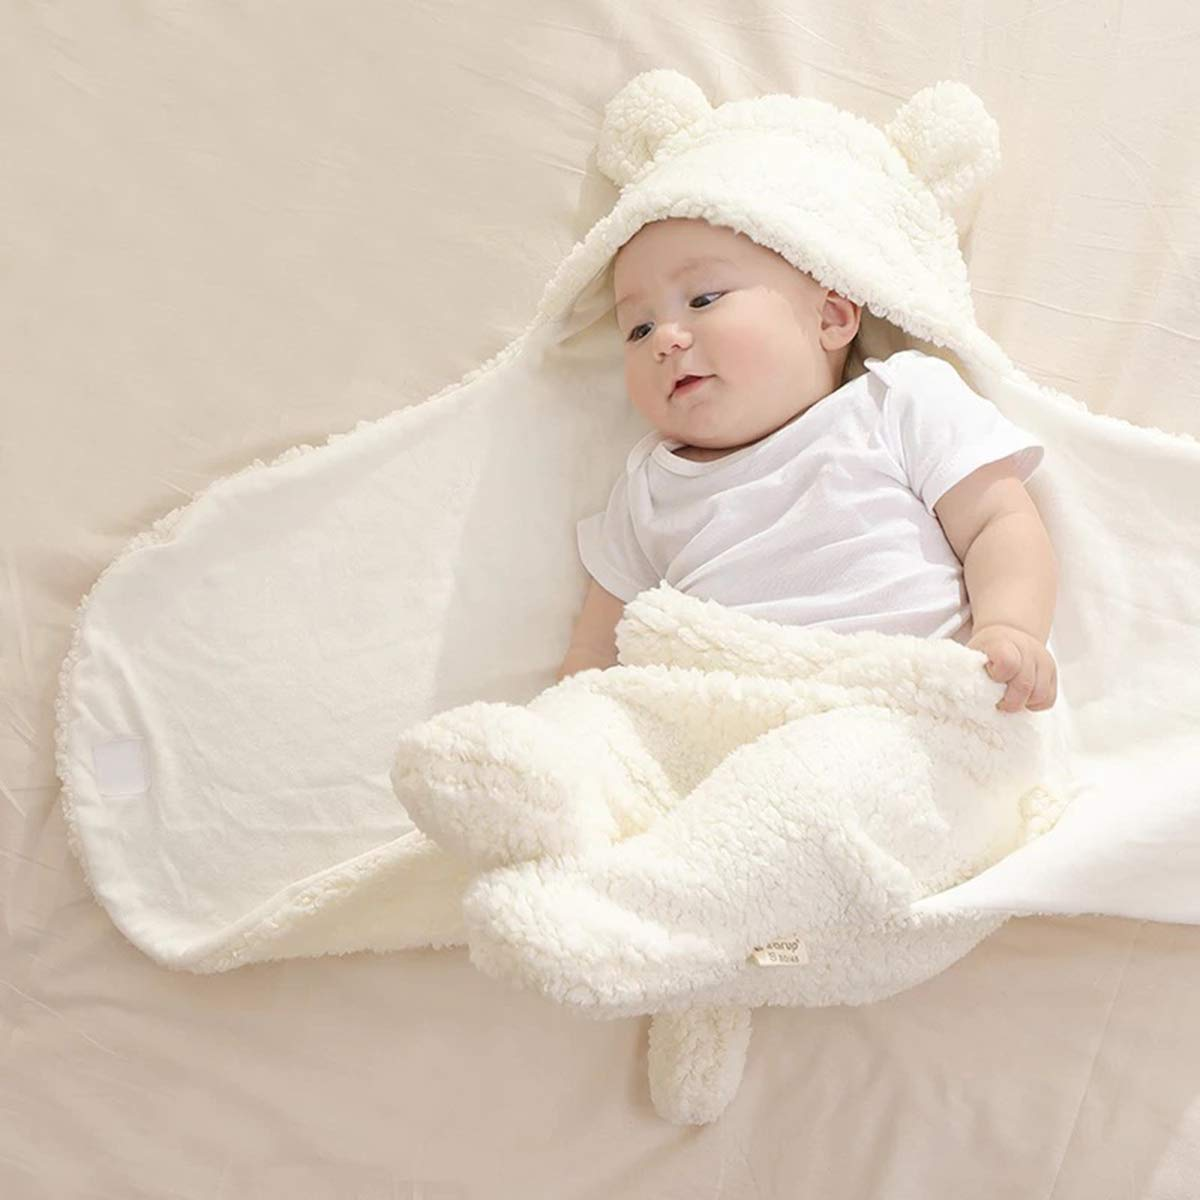 Newborn Cotton Plush Hooded Blanket Warm Soft Swaddle Sleeping Bag Stroller Wrap Clothes Sleeping Bags